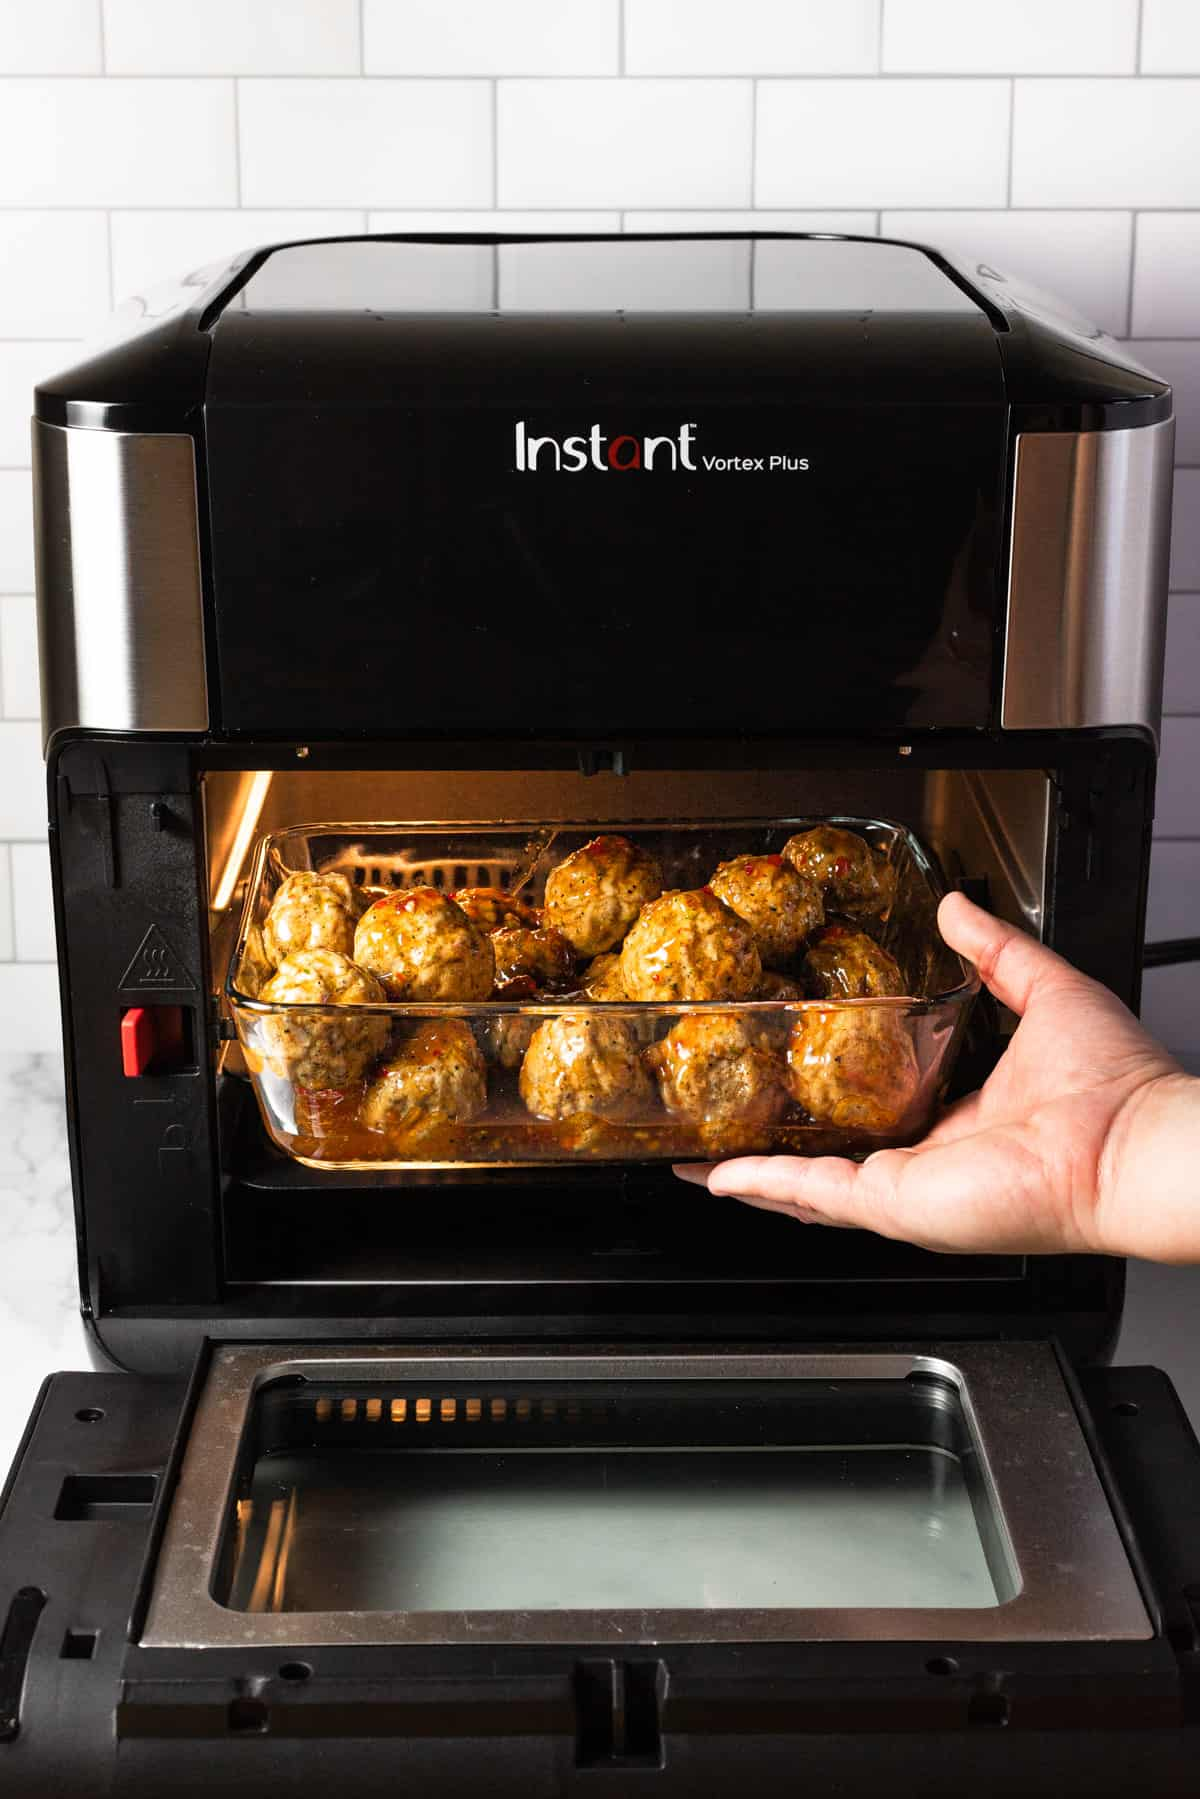 A hand putting a glass baking dish of meatballs into a small oven